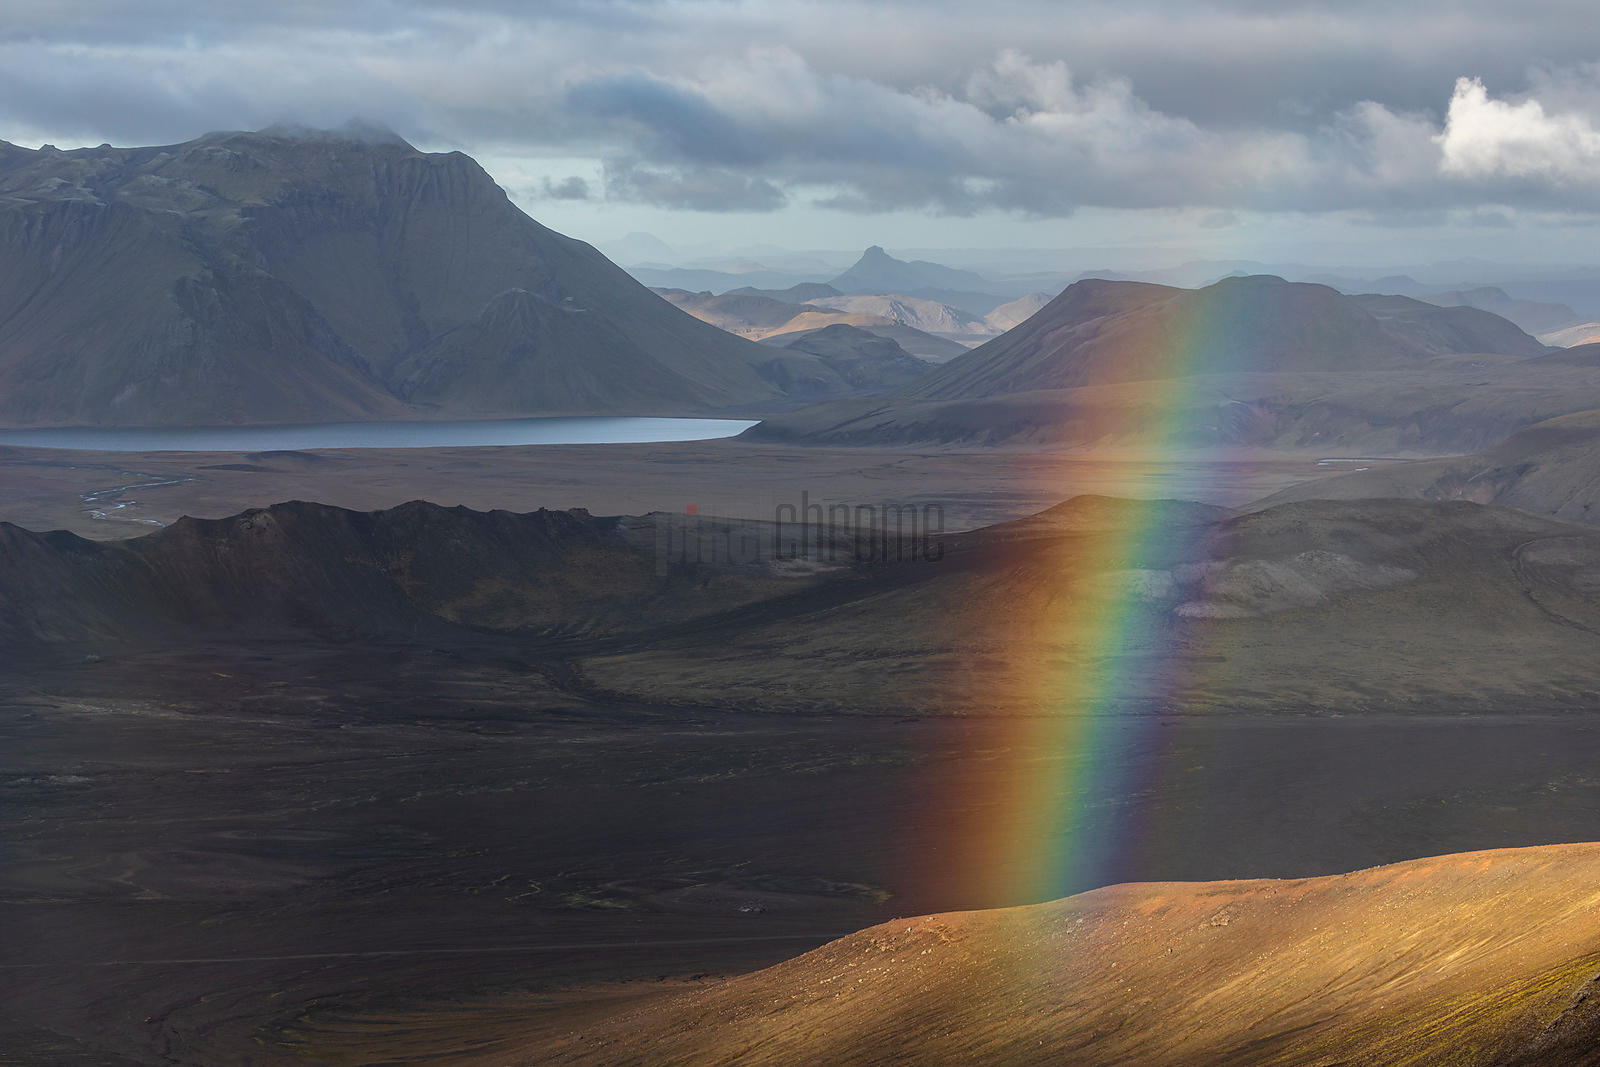 Rainbow in a Highlands Landscape